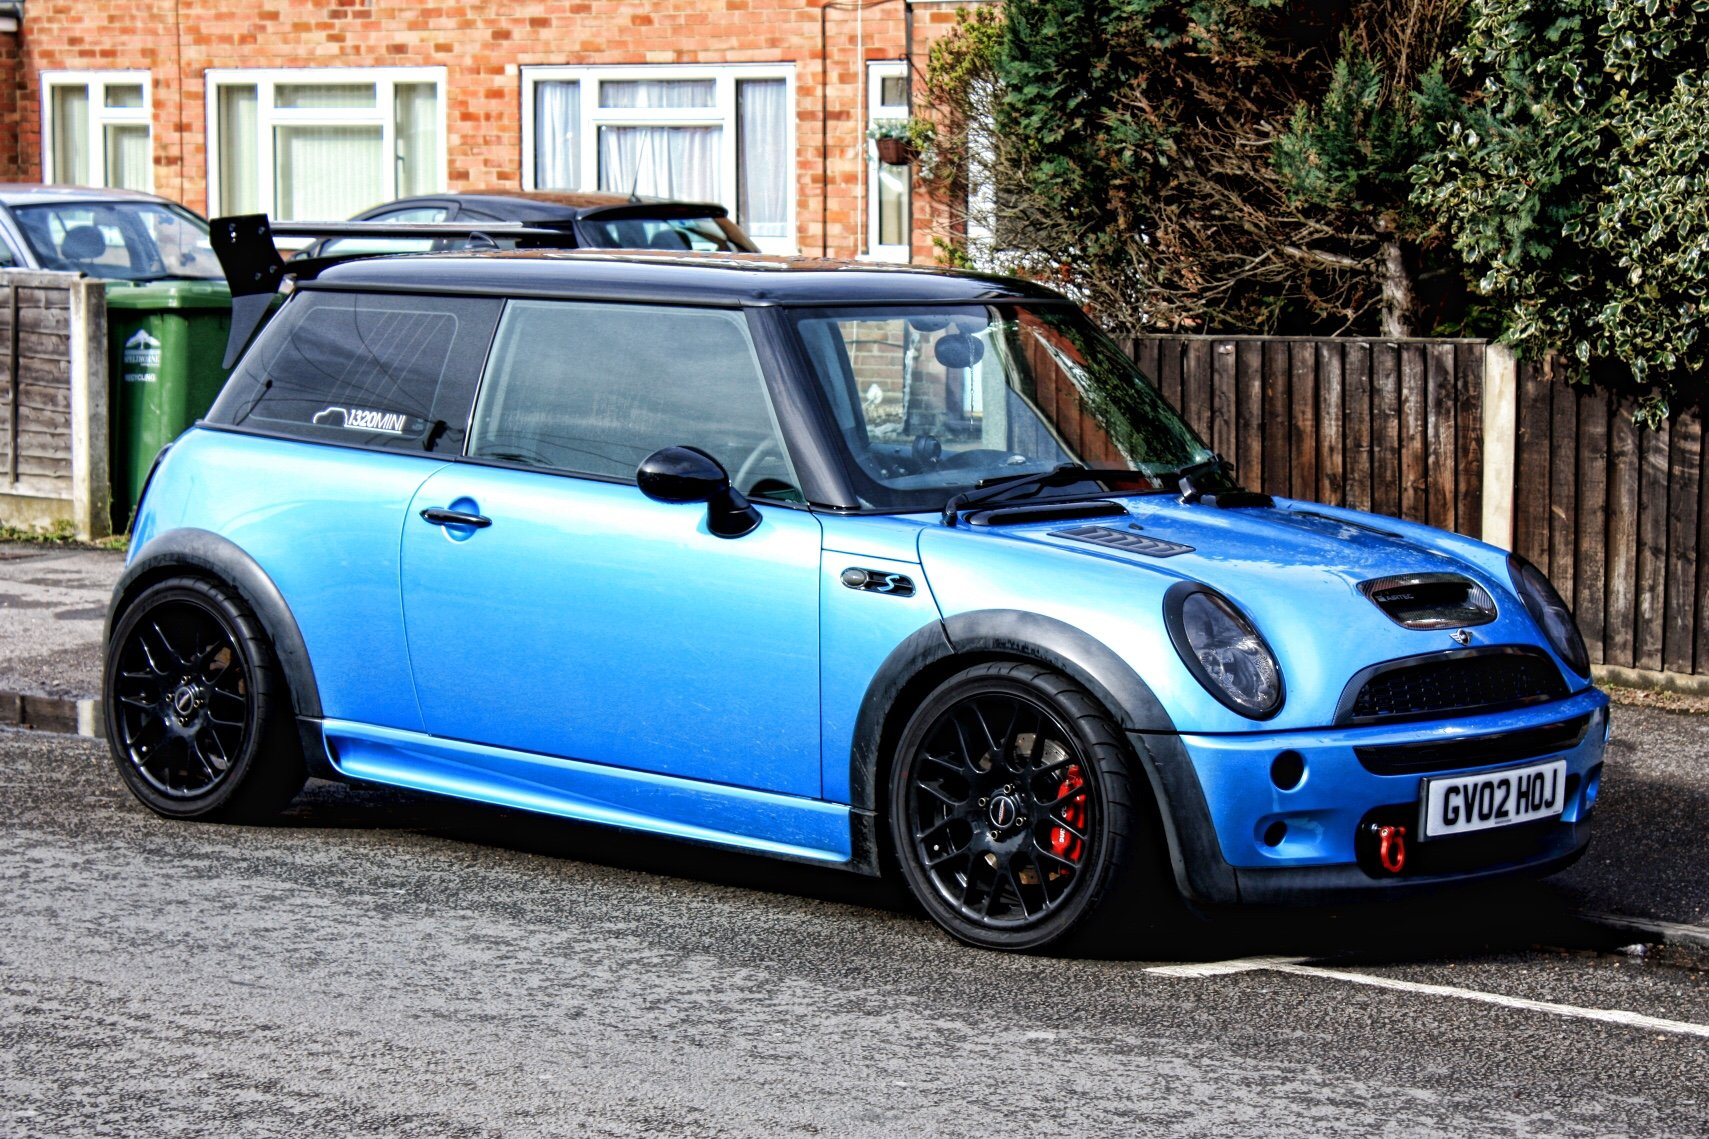 modified mini r53 running 221bhp. Black Bedroom Furniture Sets. Home Design Ideas